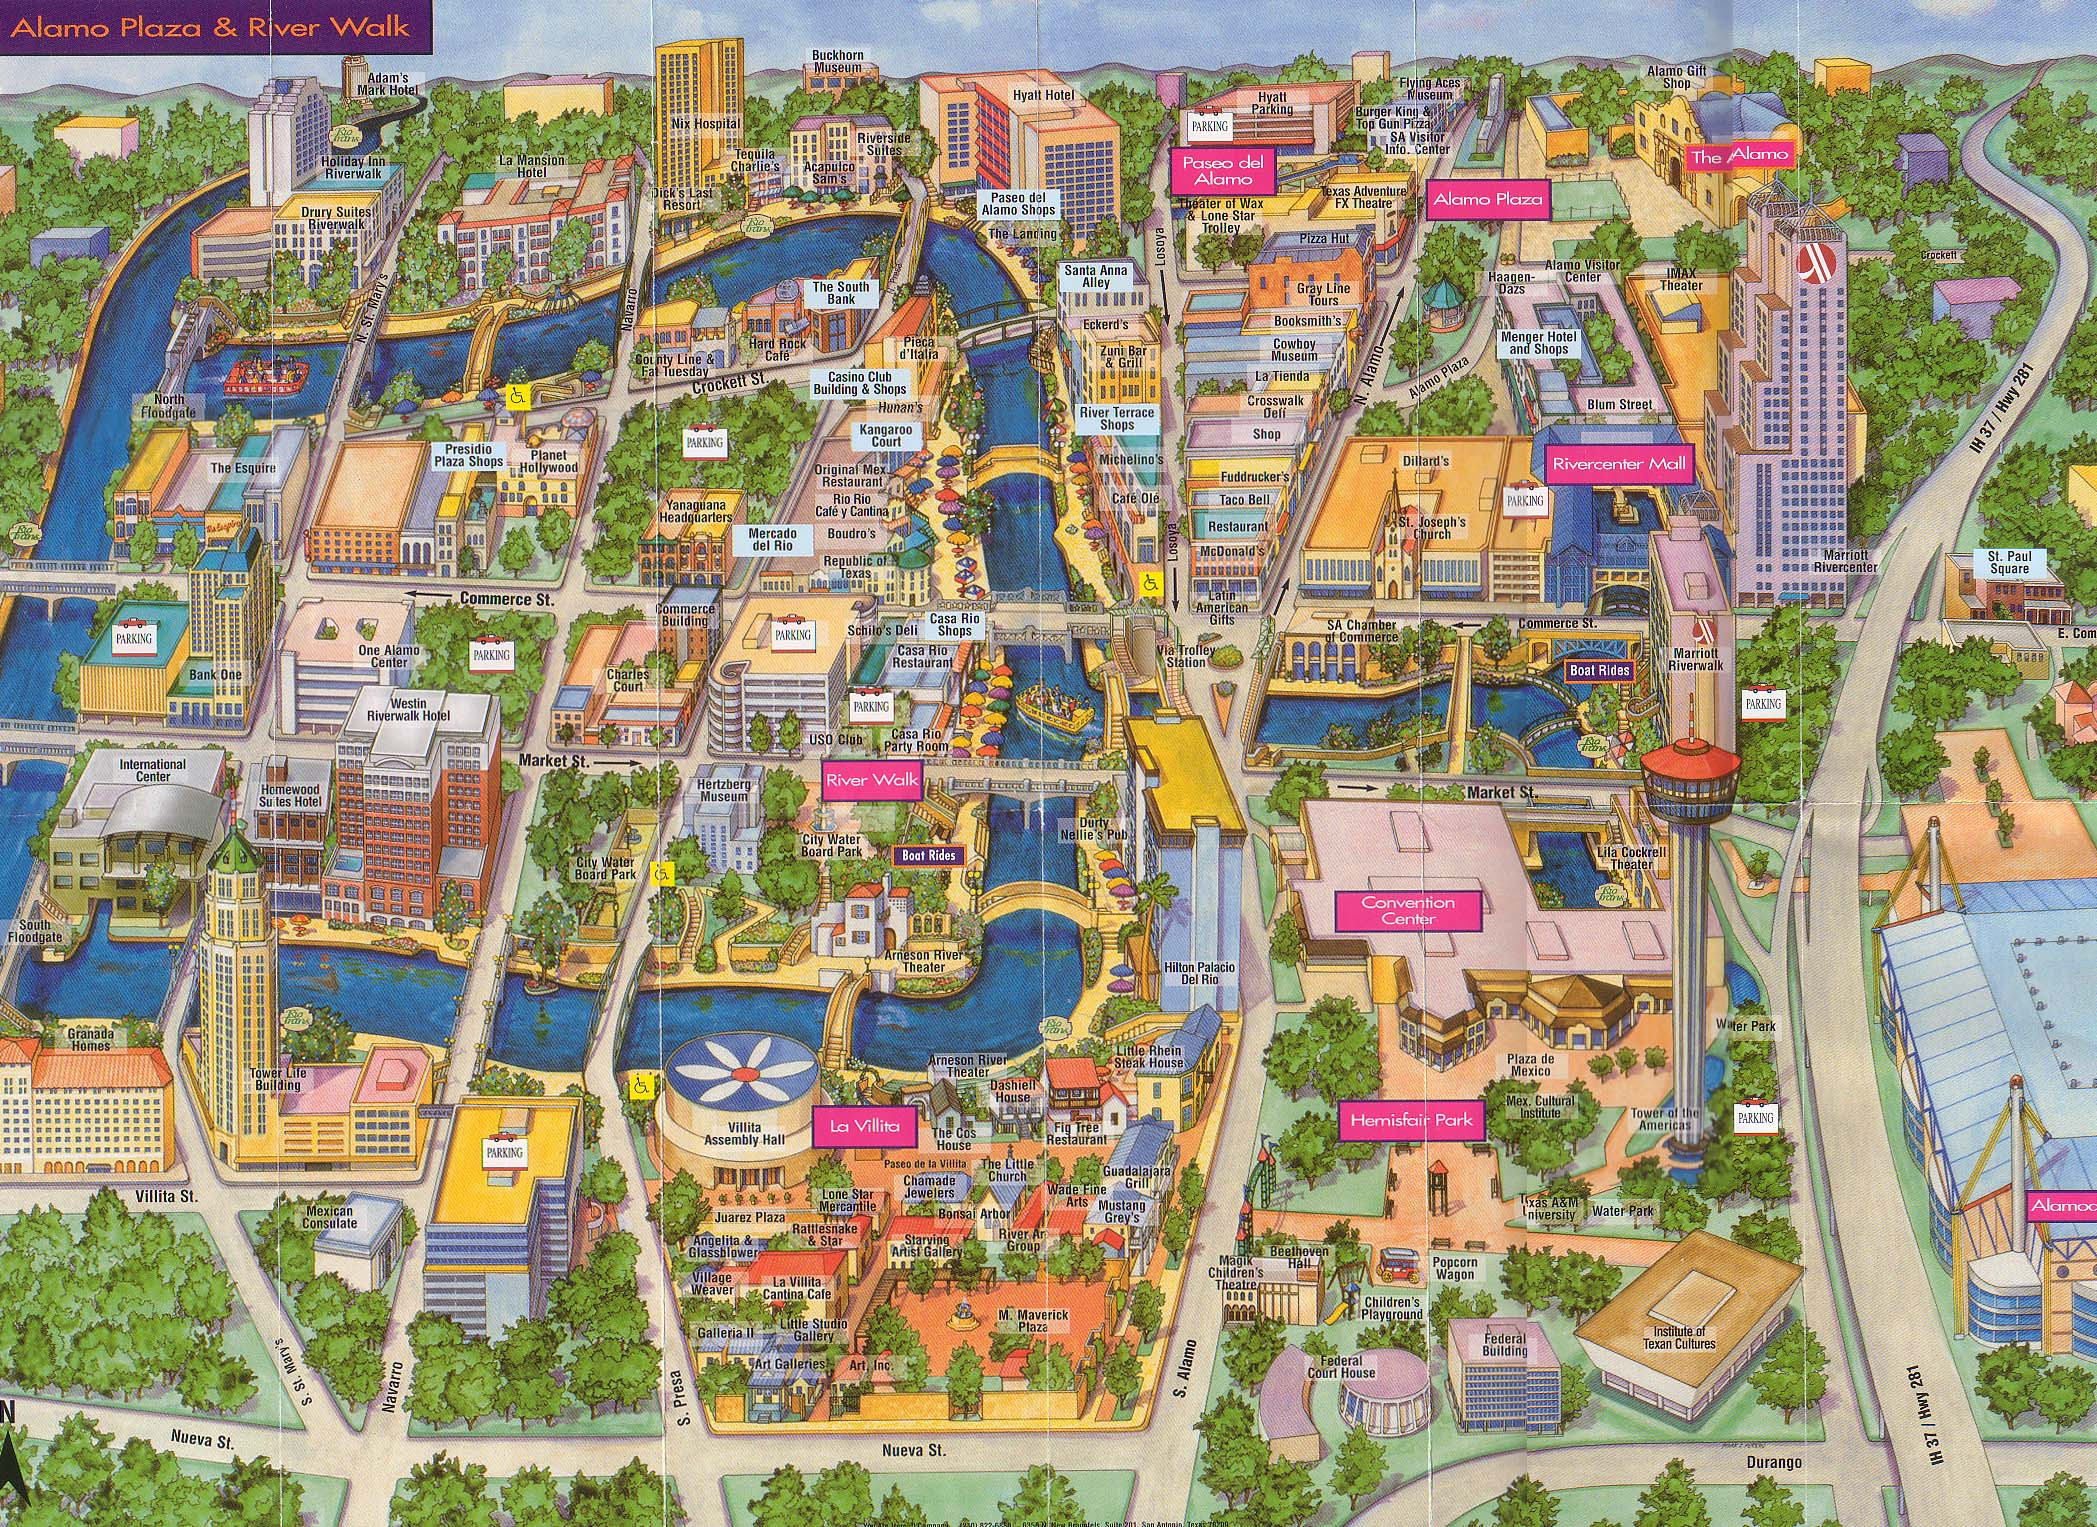 San Antonio Texas Tourist Map San Antonio Texas mappery – Austin Tourist Map